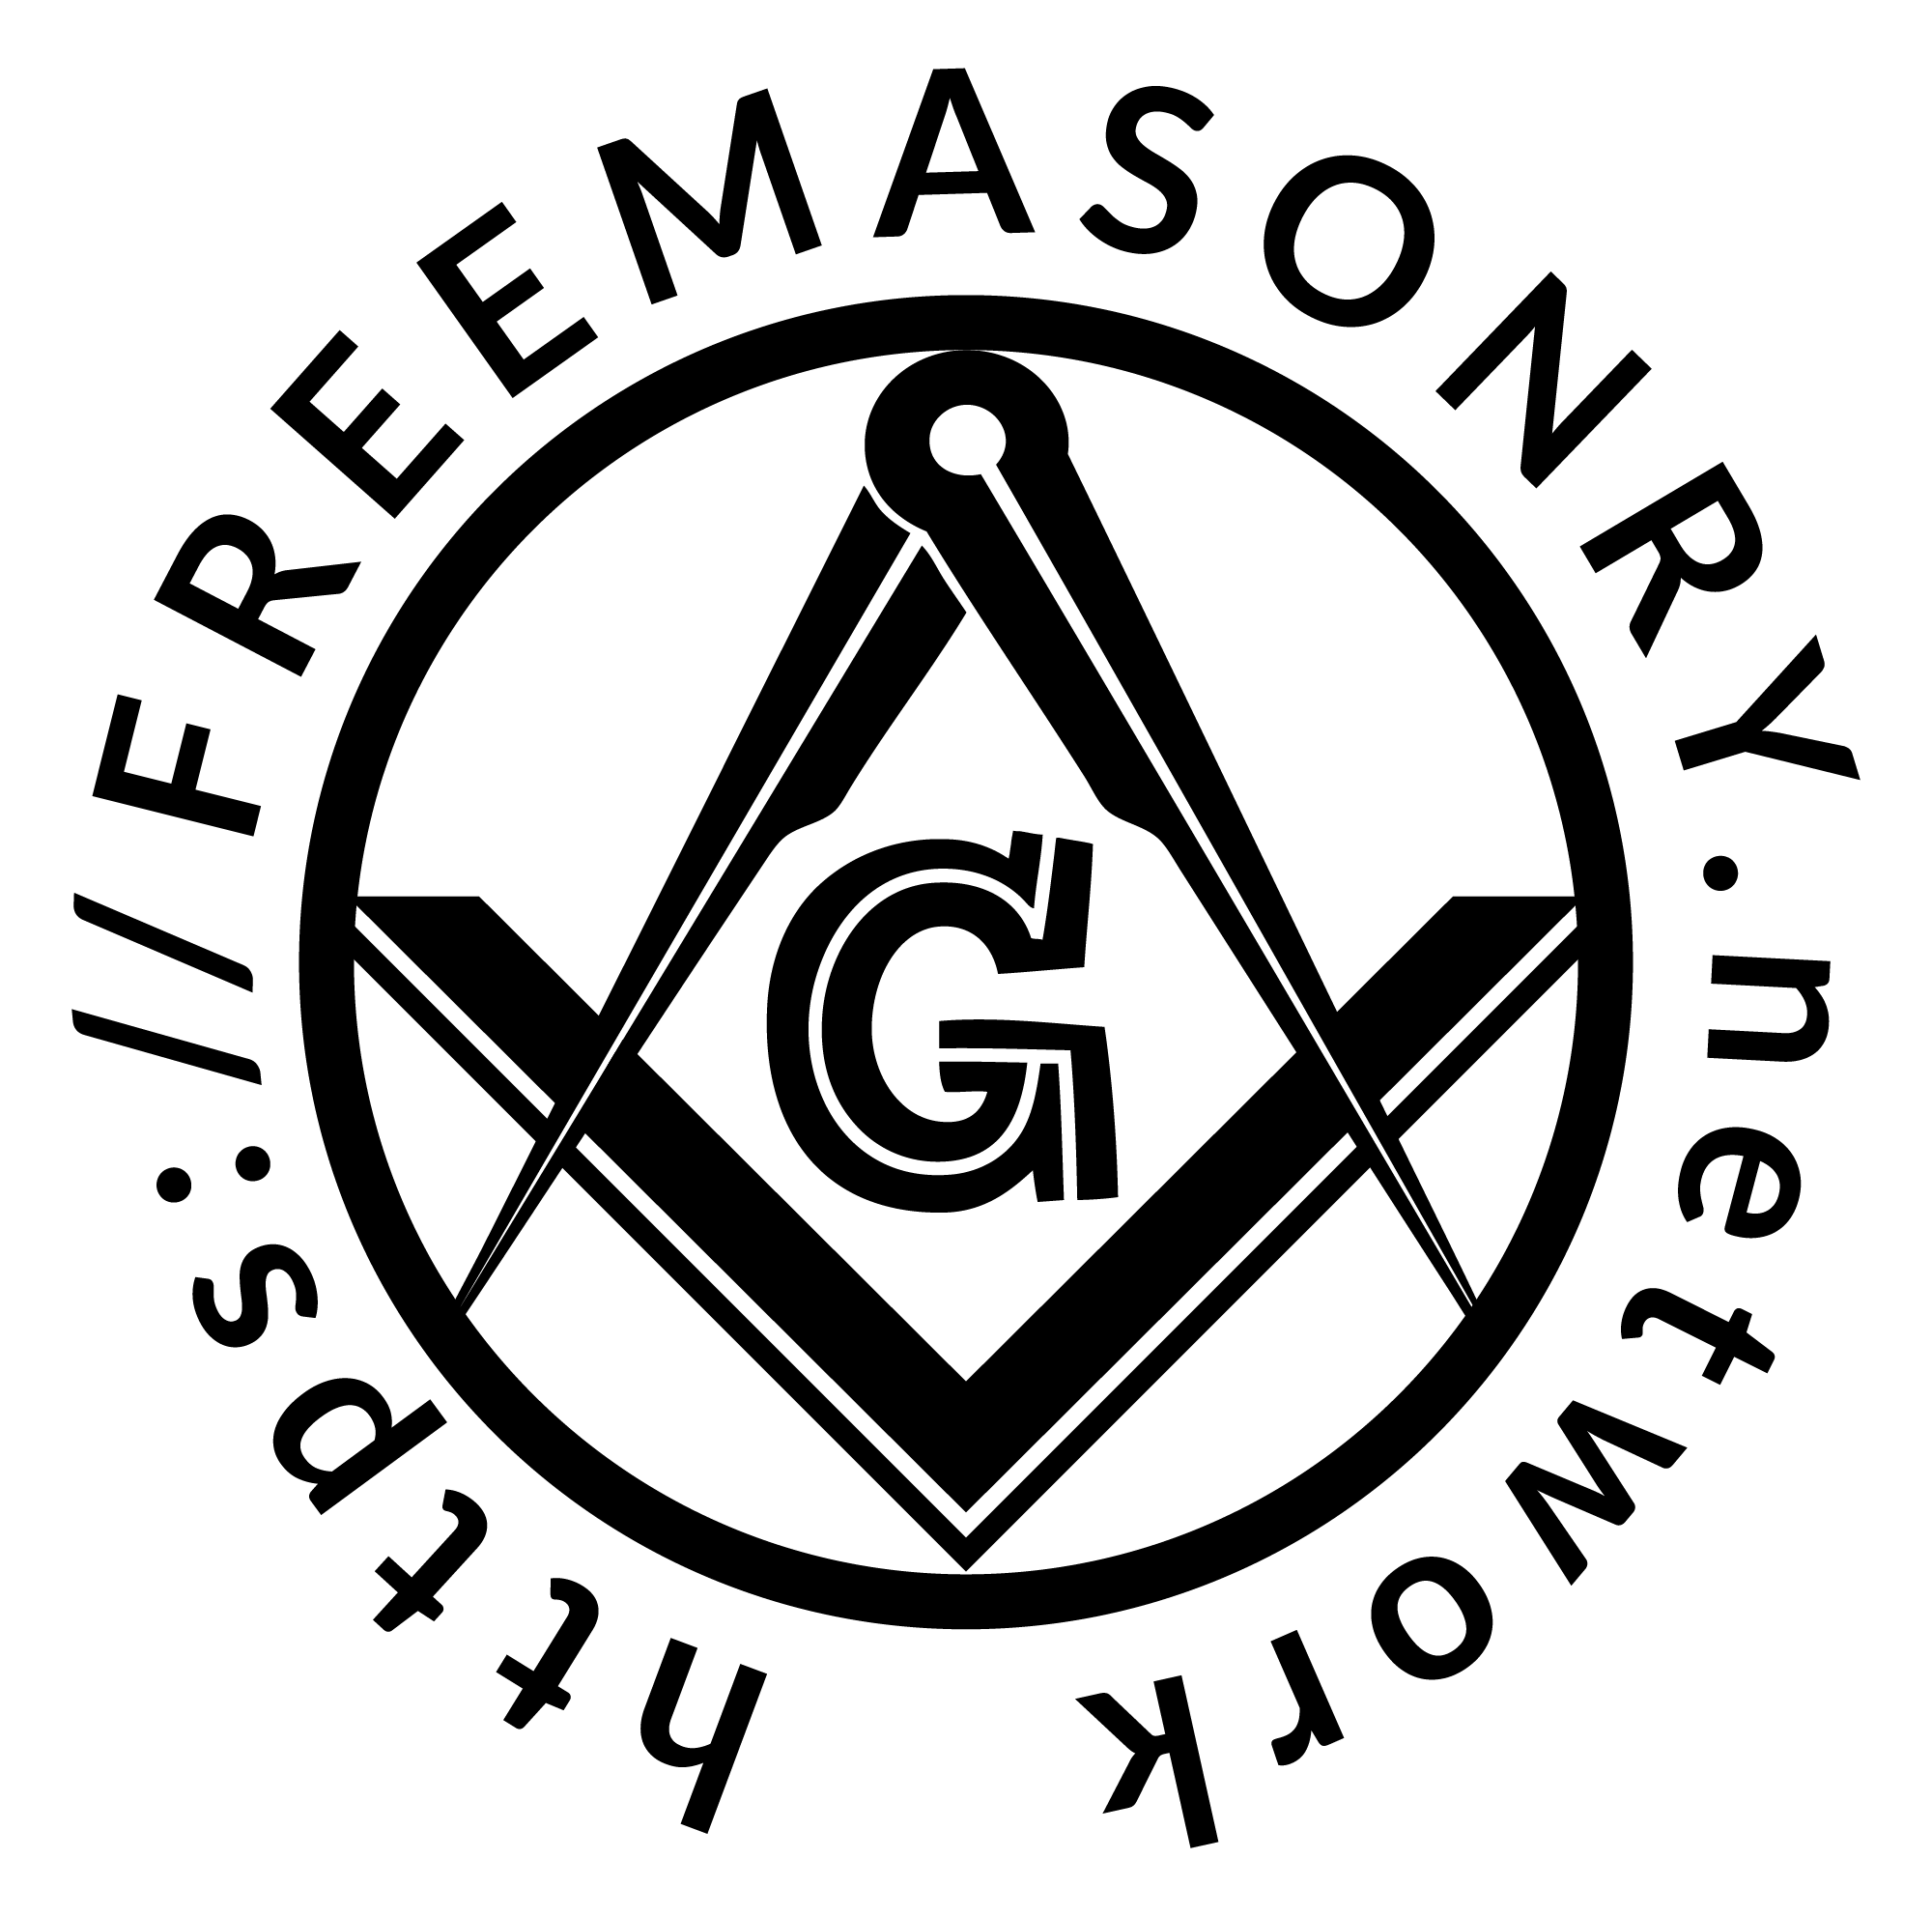 Freemasonry in Israel, Israeli Freemasonry